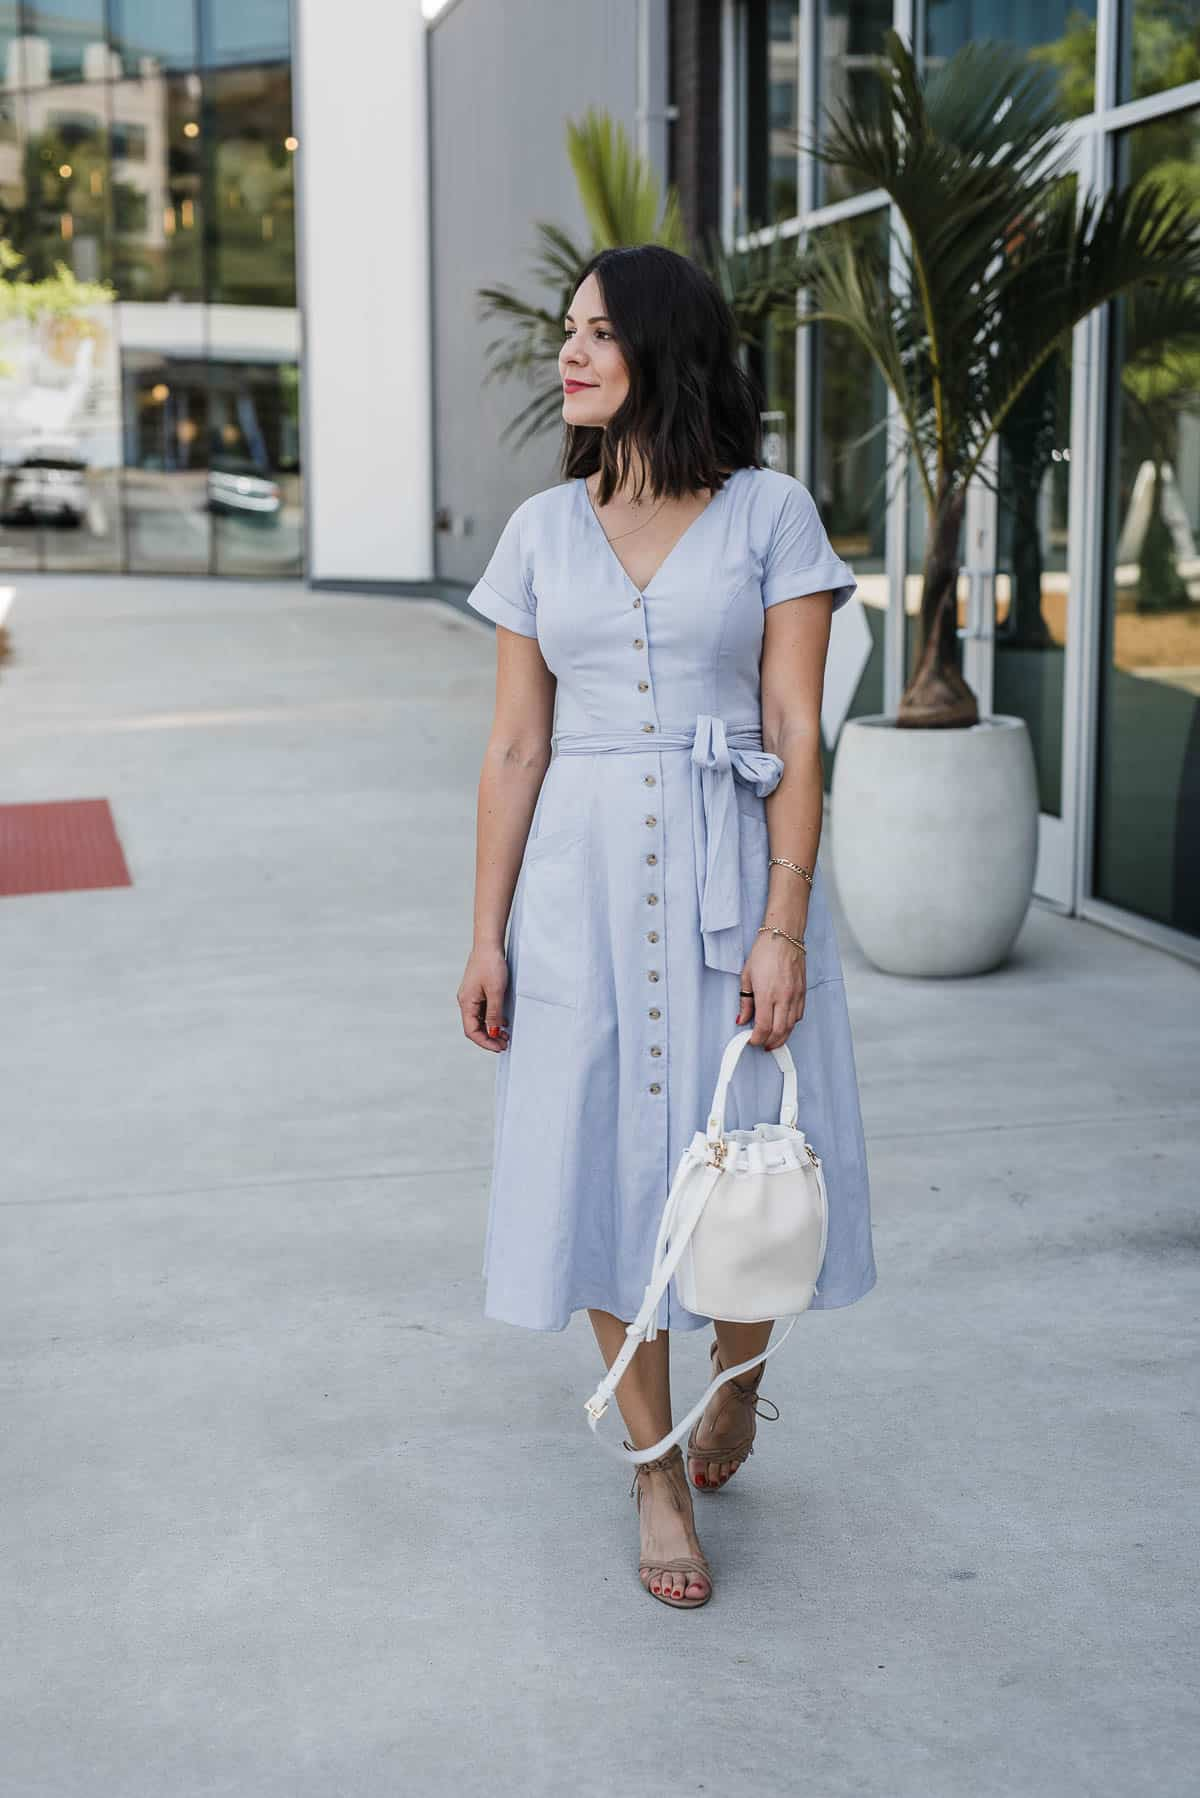 Summer dresses under $100 - GMG Collection